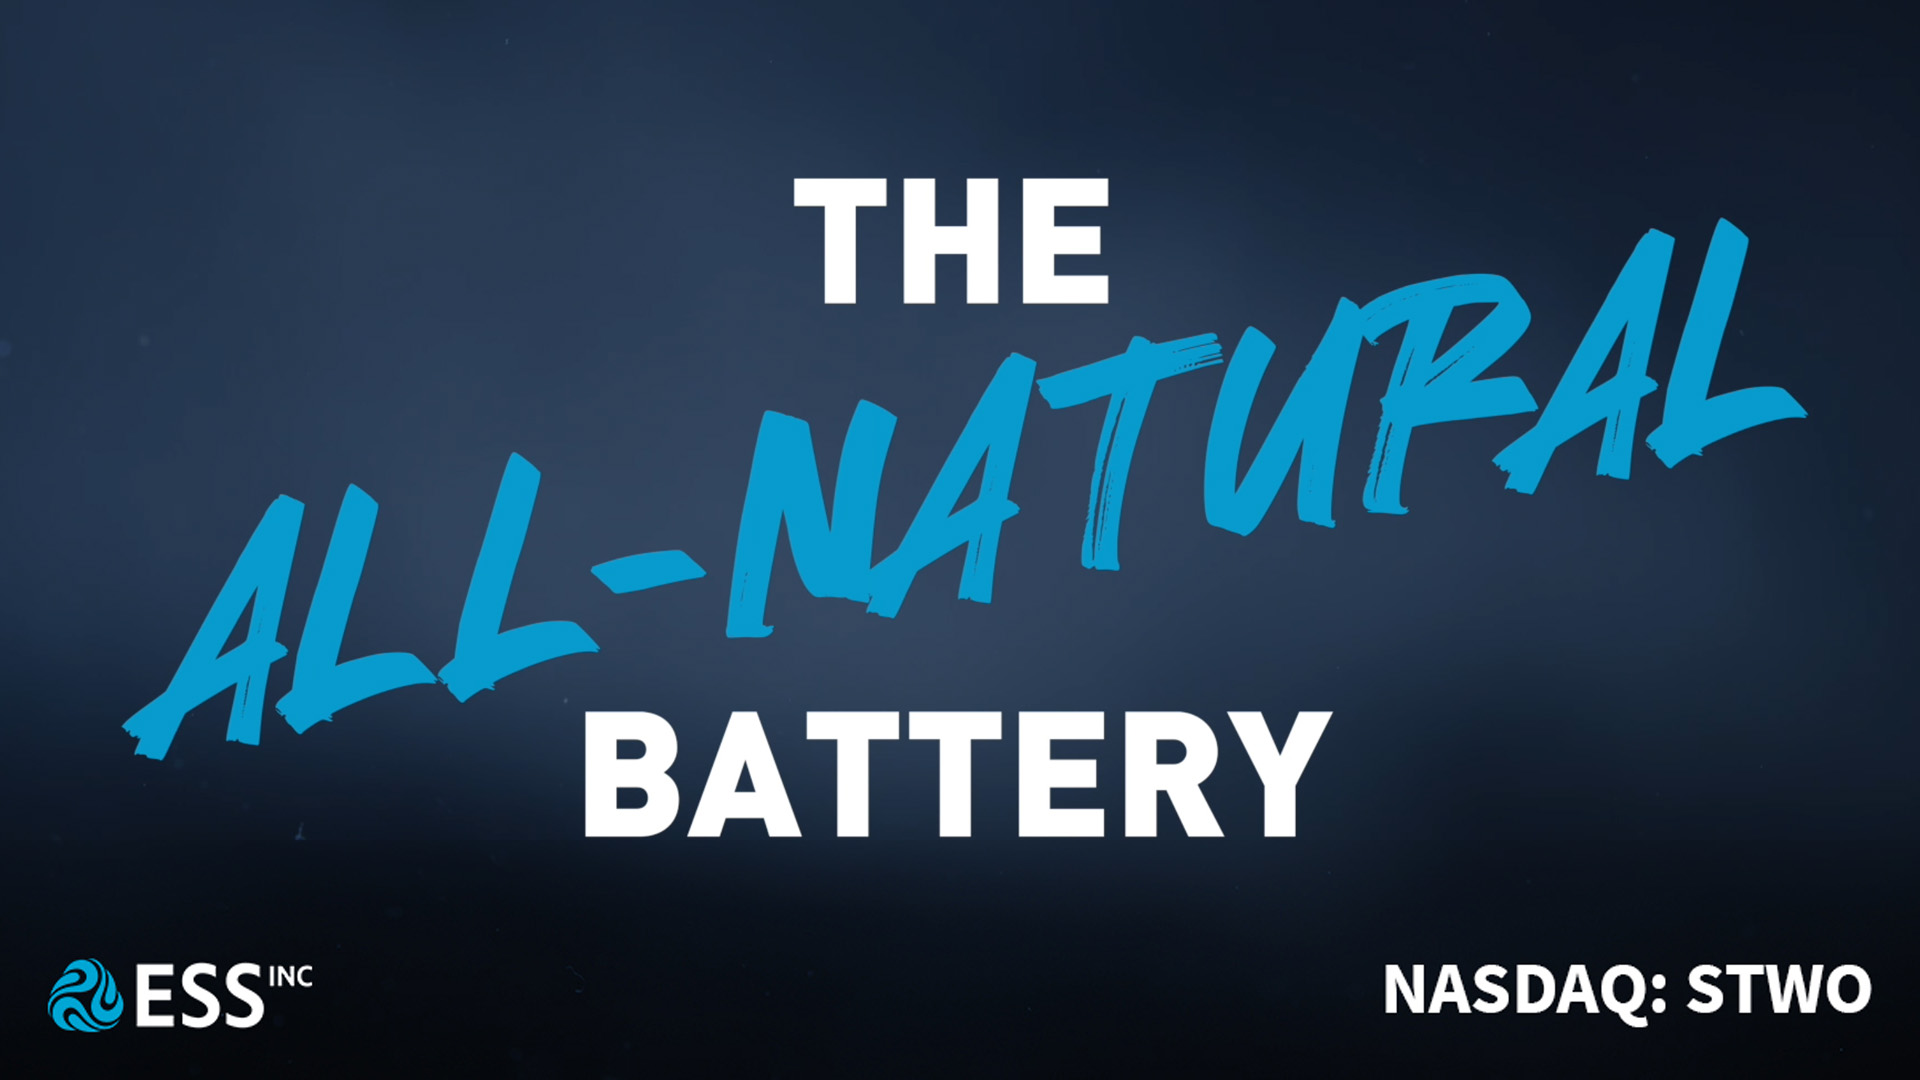 Ess all-natural battery video screen